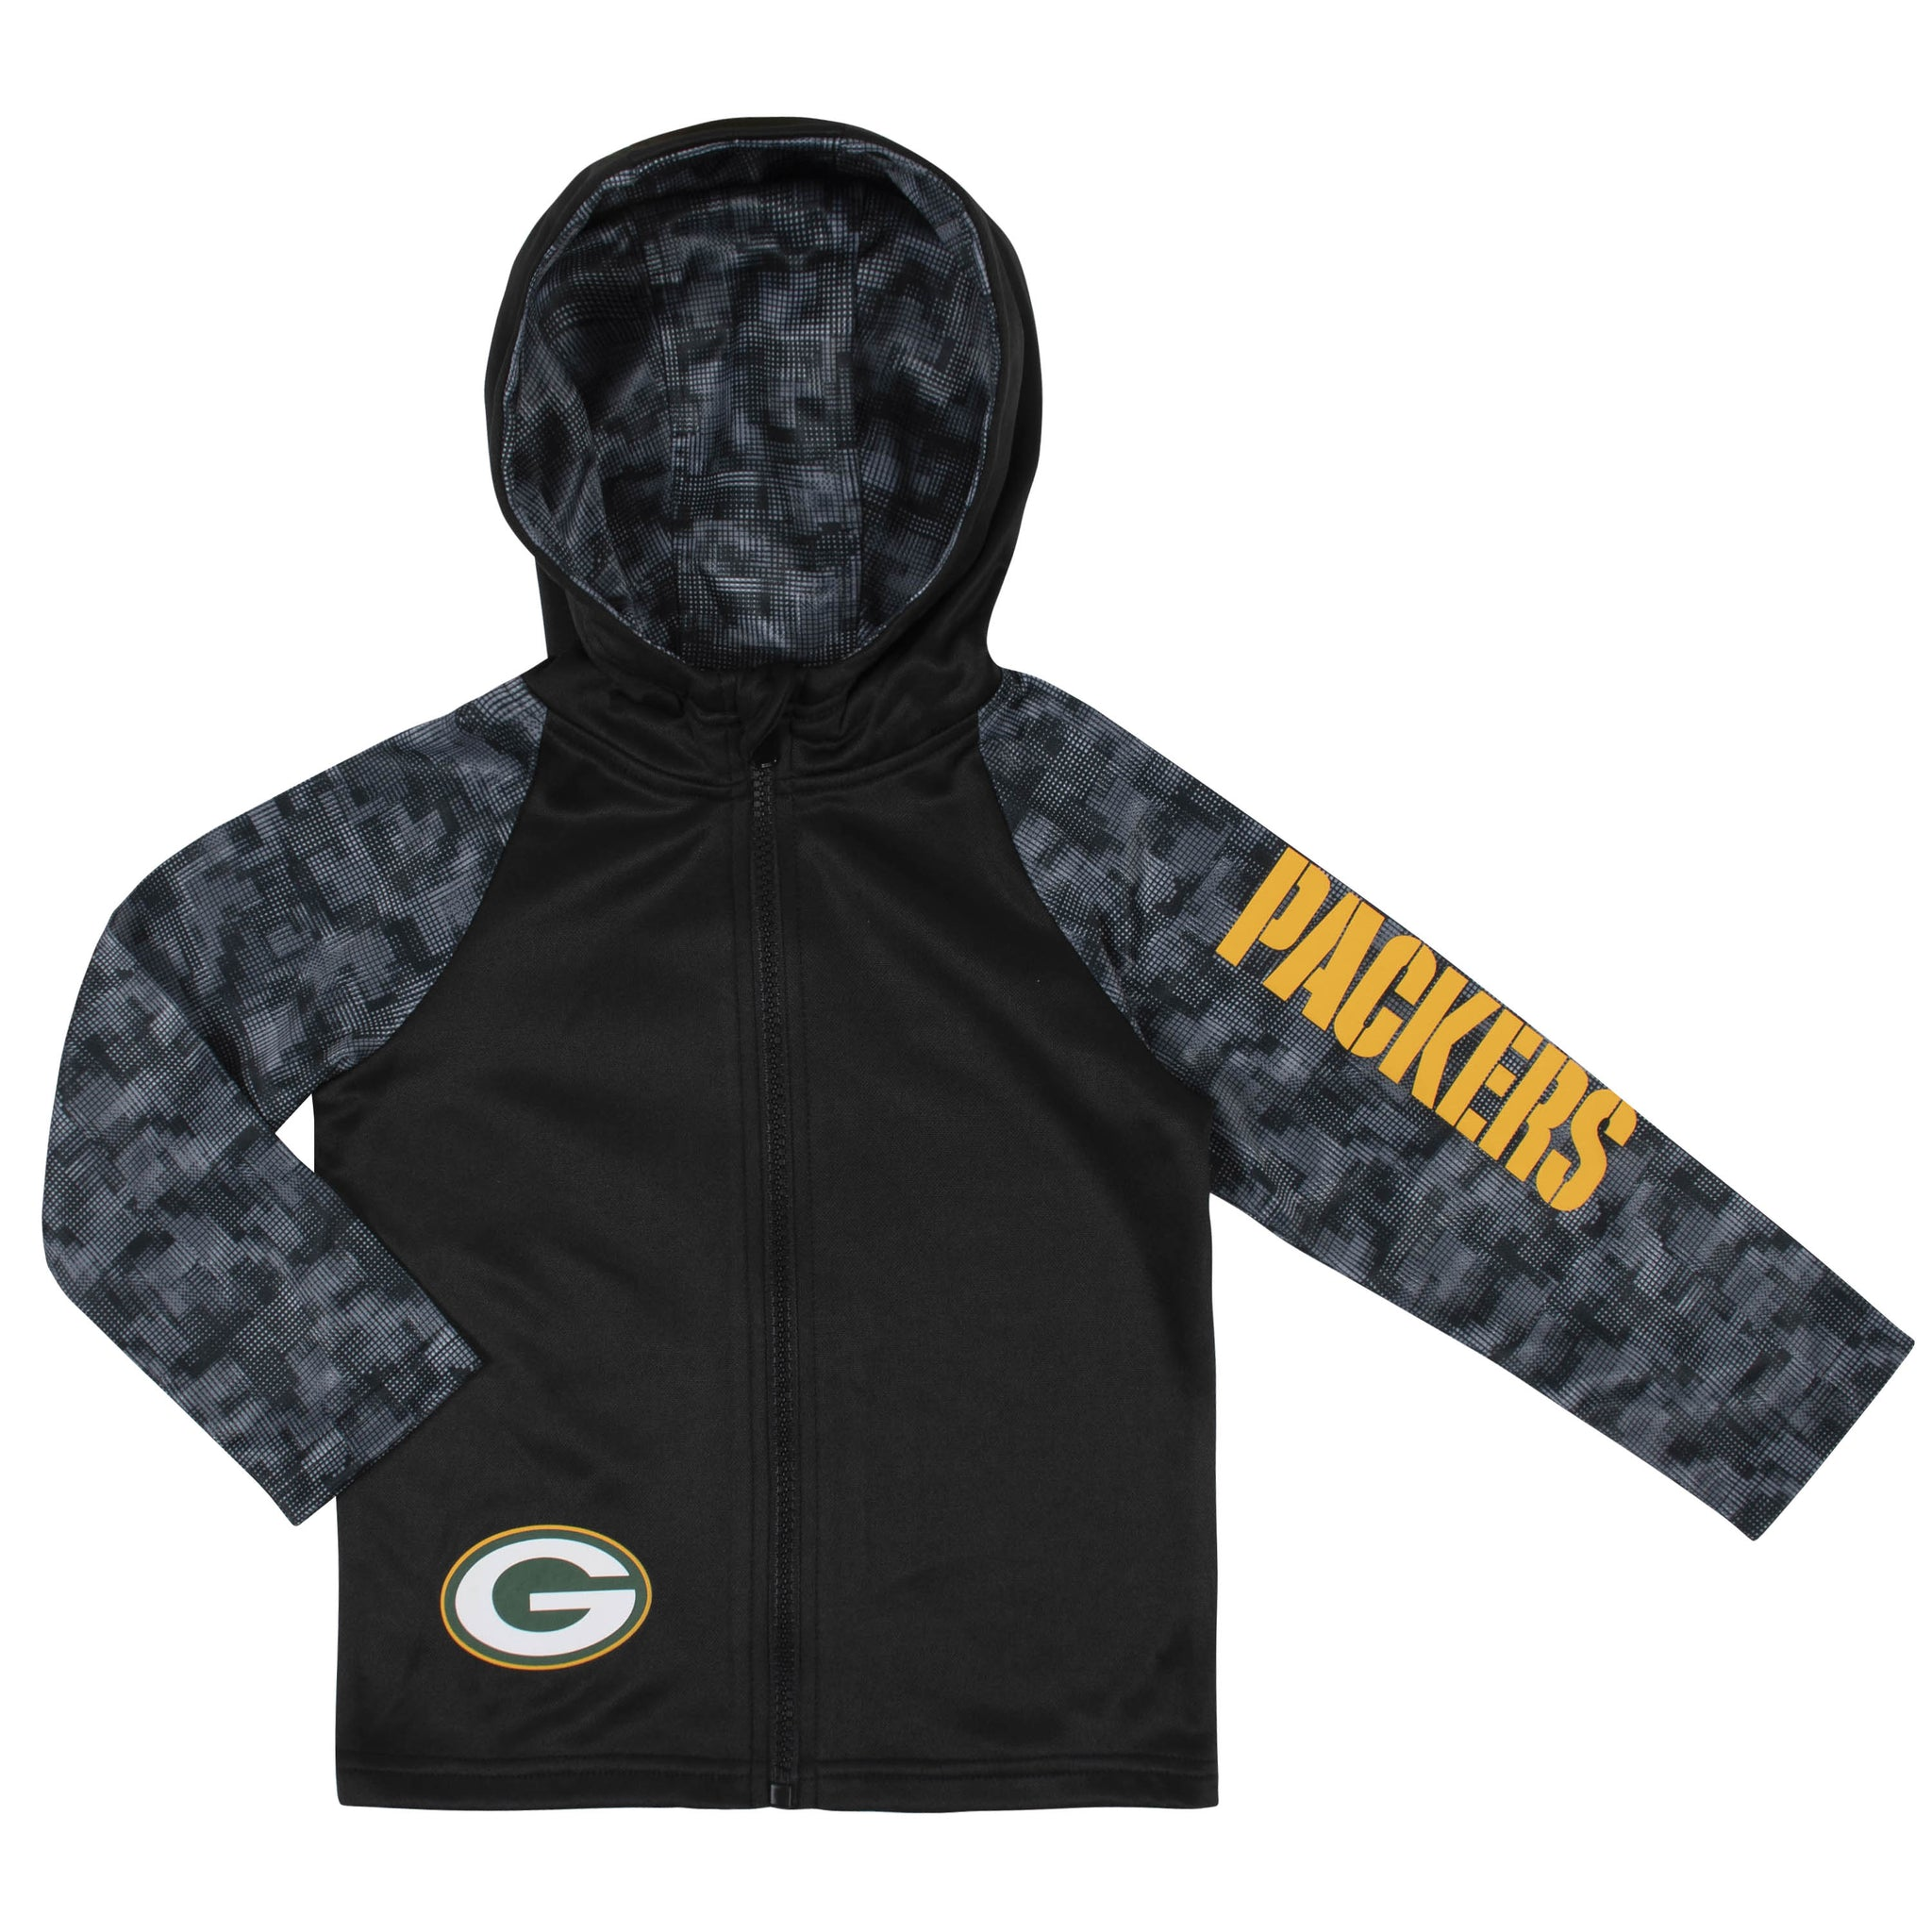 Toddler Boys Green Bay Packers Hooded Jacket-Gerber Childrenswear